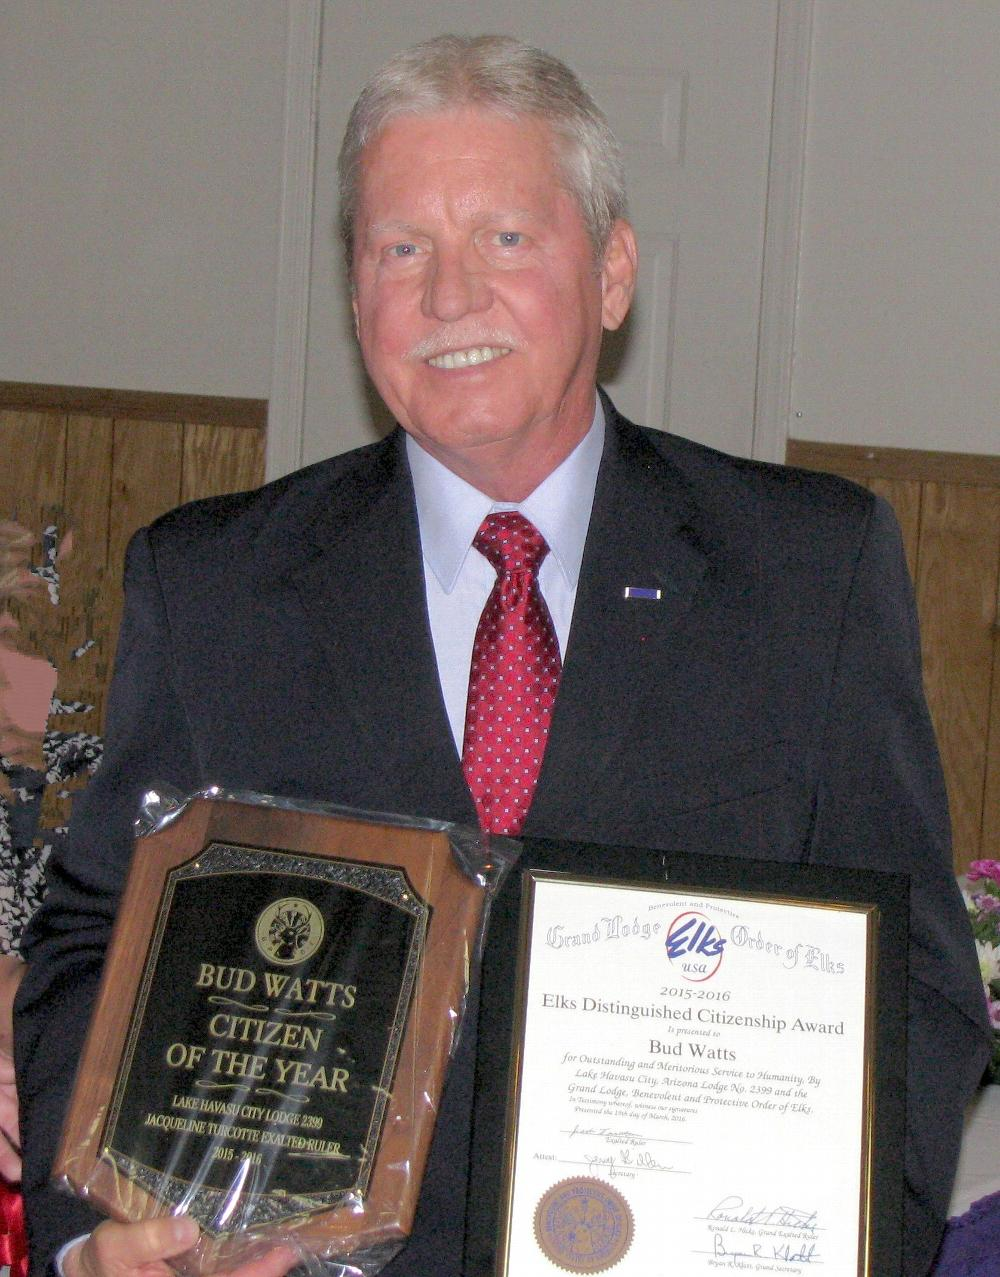 Bud Watts wins Citizen of the Year Award. Bud joins an elite group with this award and he certainly deserves recognition for the many hours he has contributed to the Marine Corps League, as Elks Veterans Chairman, and the Disabled American Veterans to name a few of his good citizenship activities.